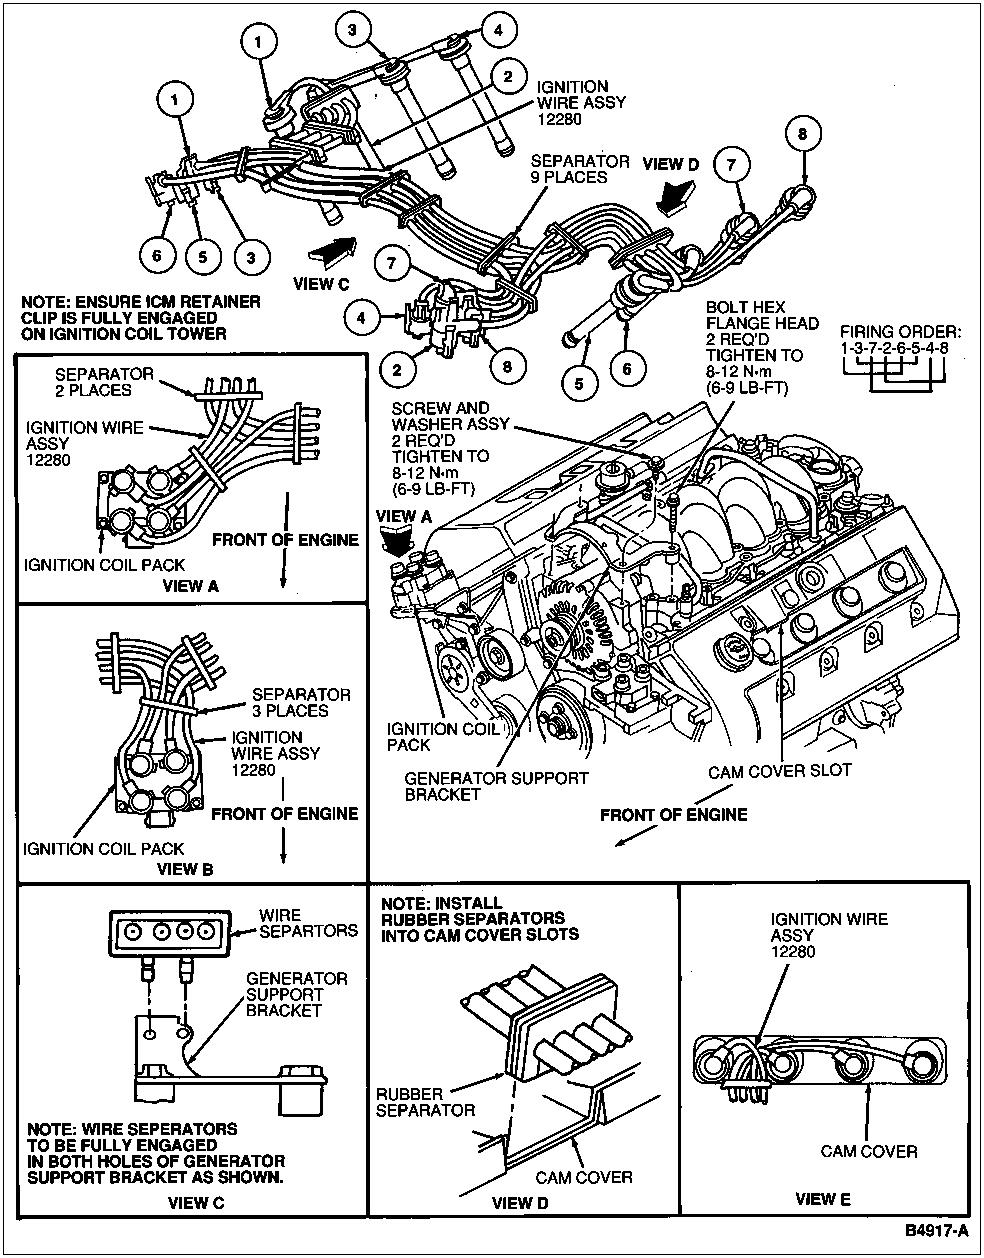 Air Ride suspension and Firing order